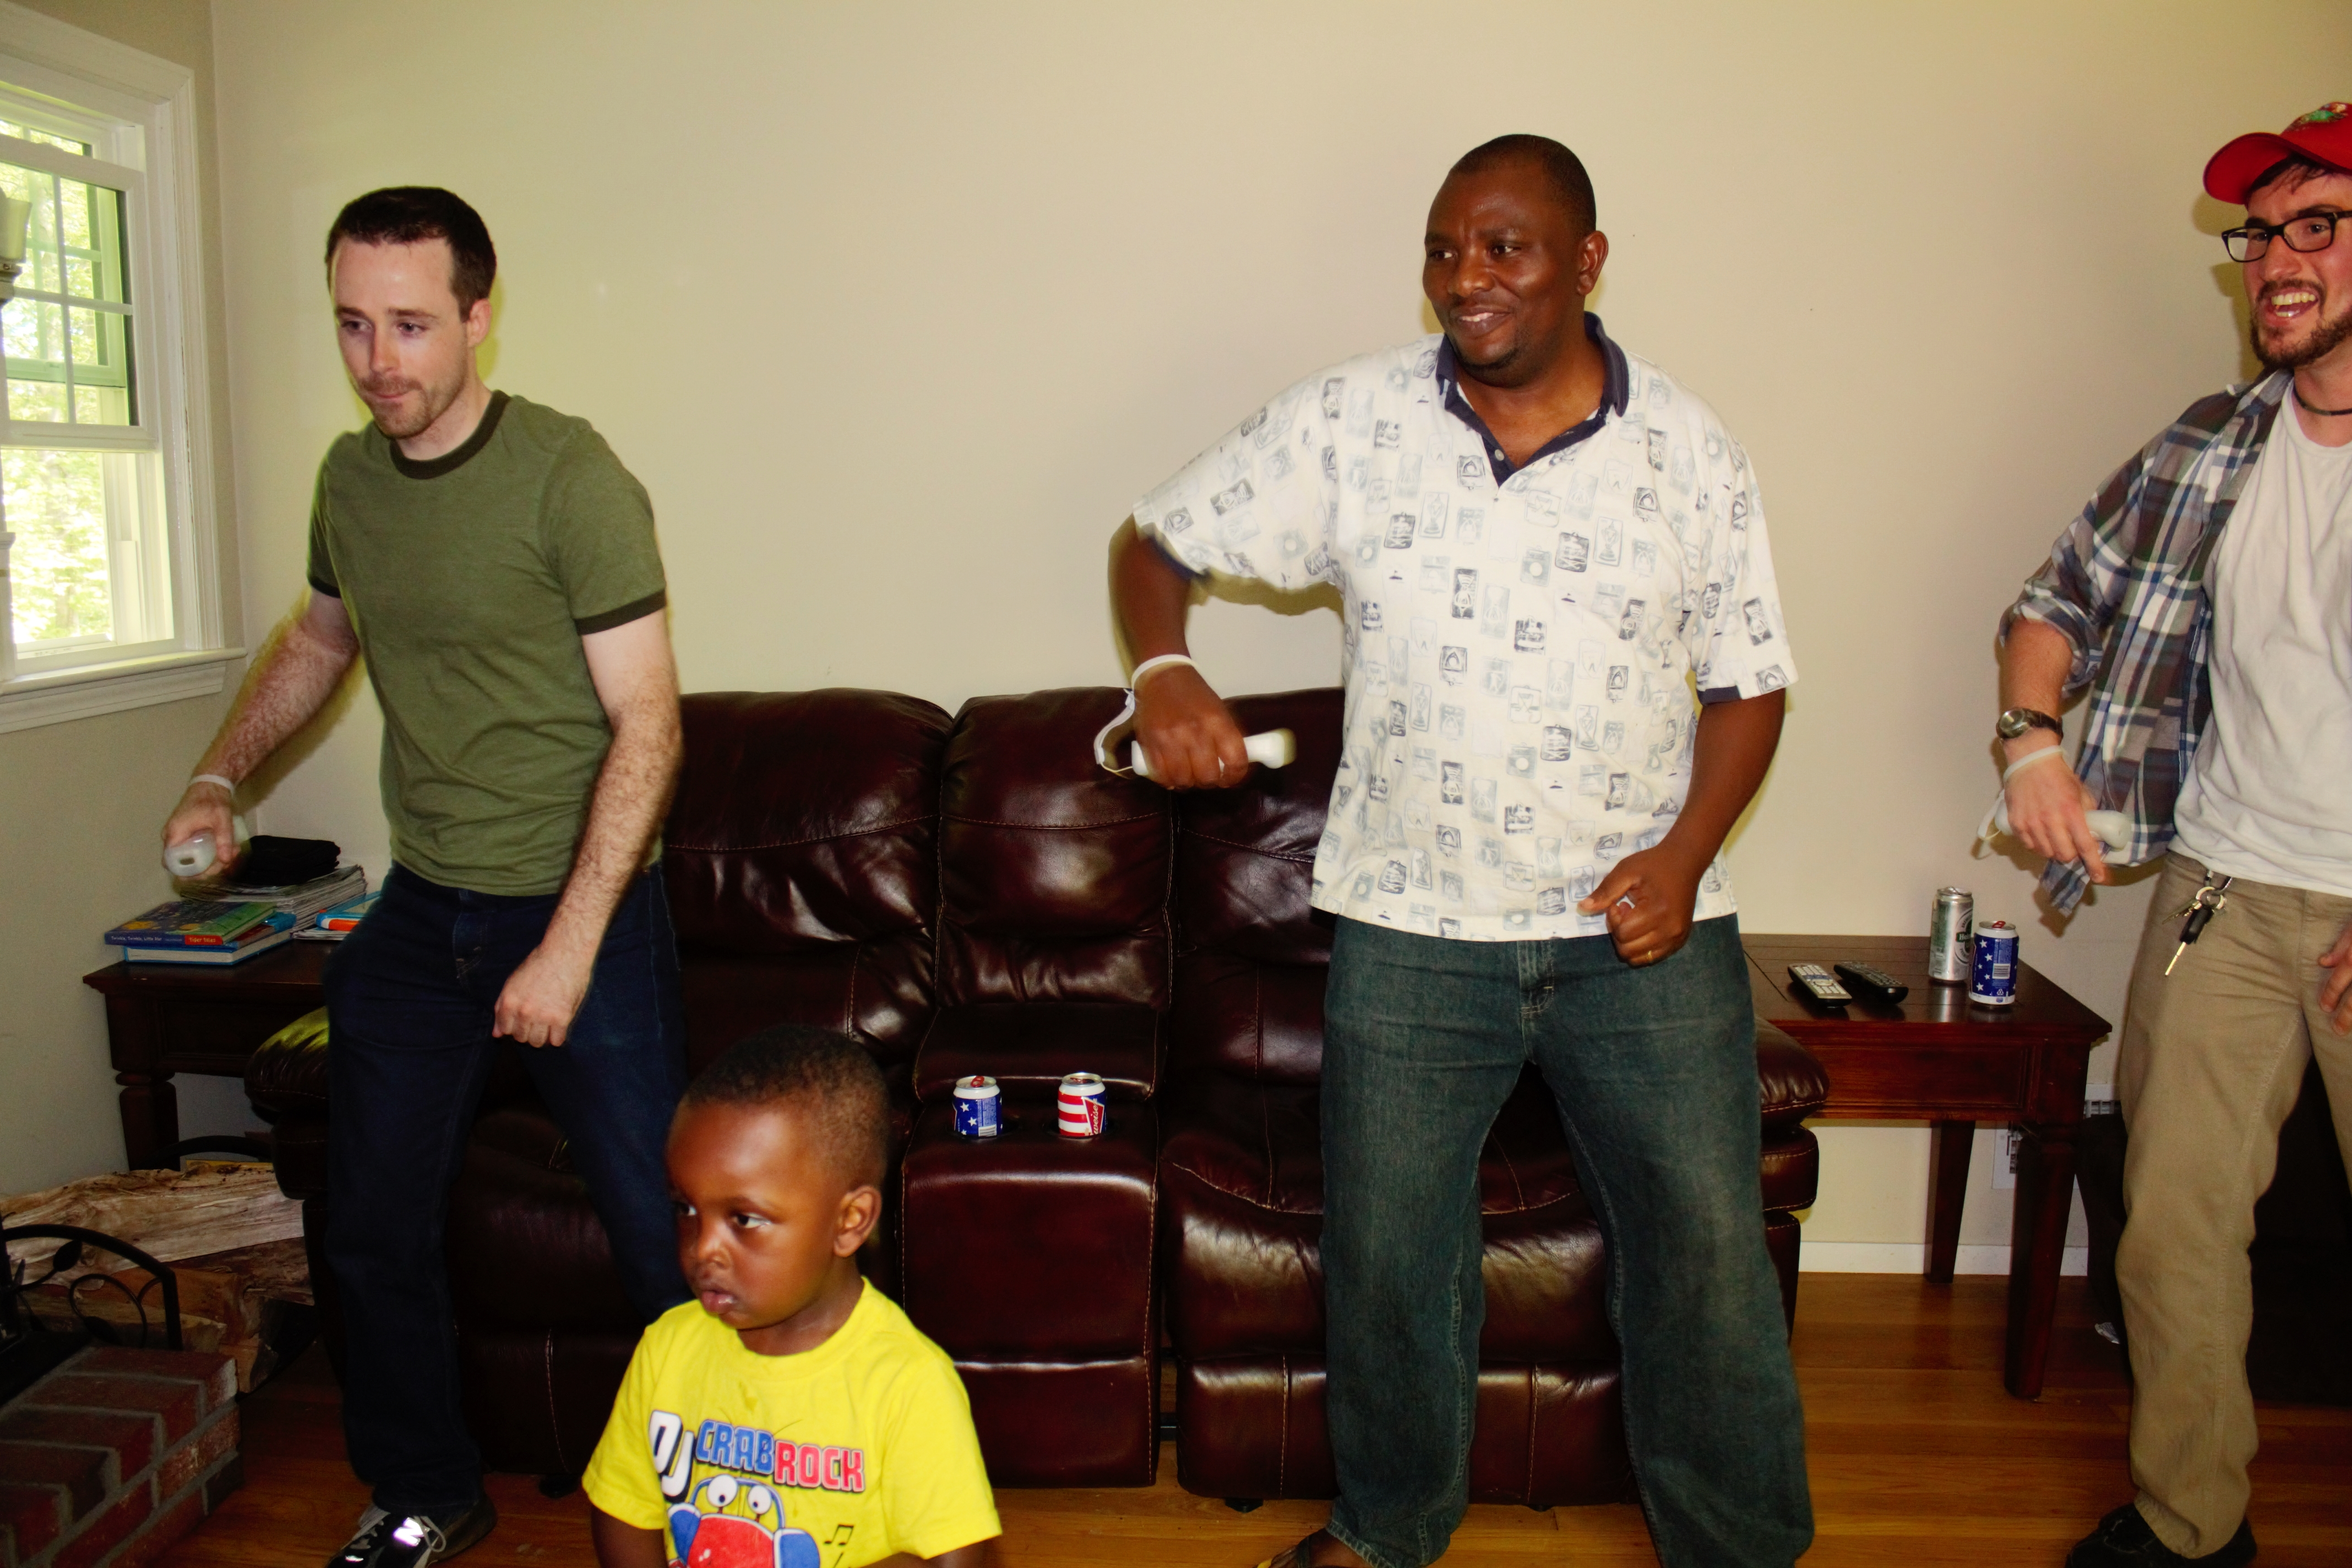 From left to right: Ian, Lenny, Martin and Andrew play Wii games.